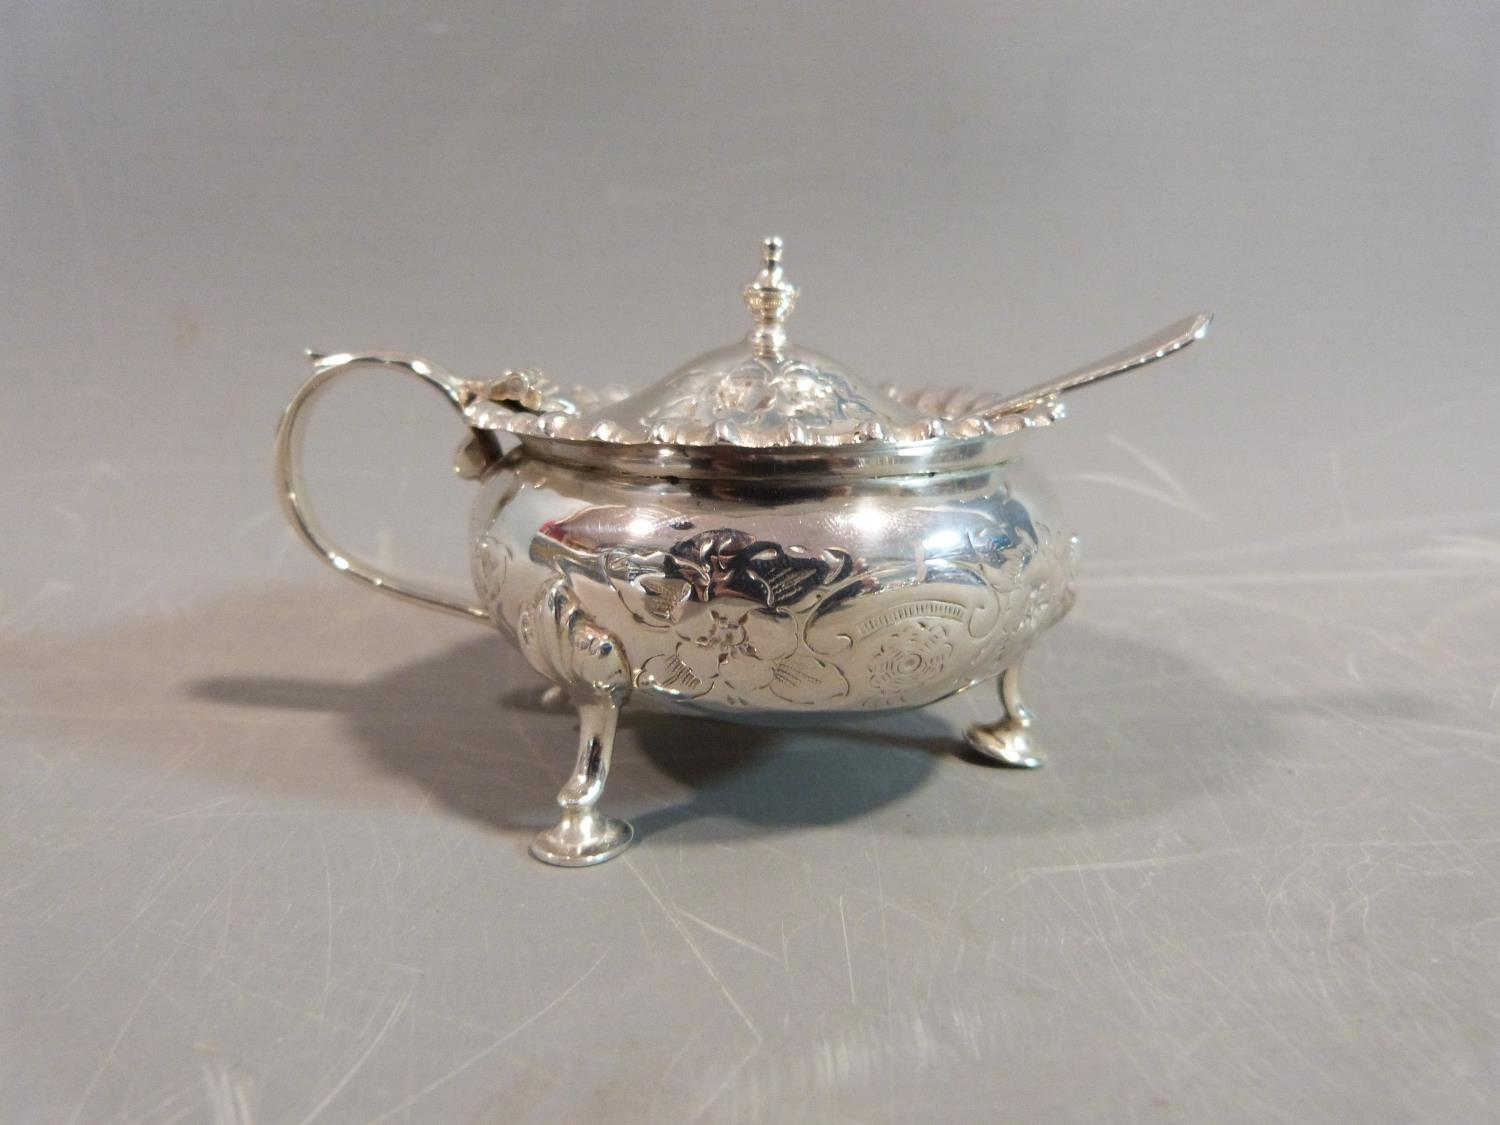 A silver floral cruet set. Hallmarked: CSG & Co. for Charles S Green & Co Ltd, Birmingham, 1954. Not - Image 7 of 11